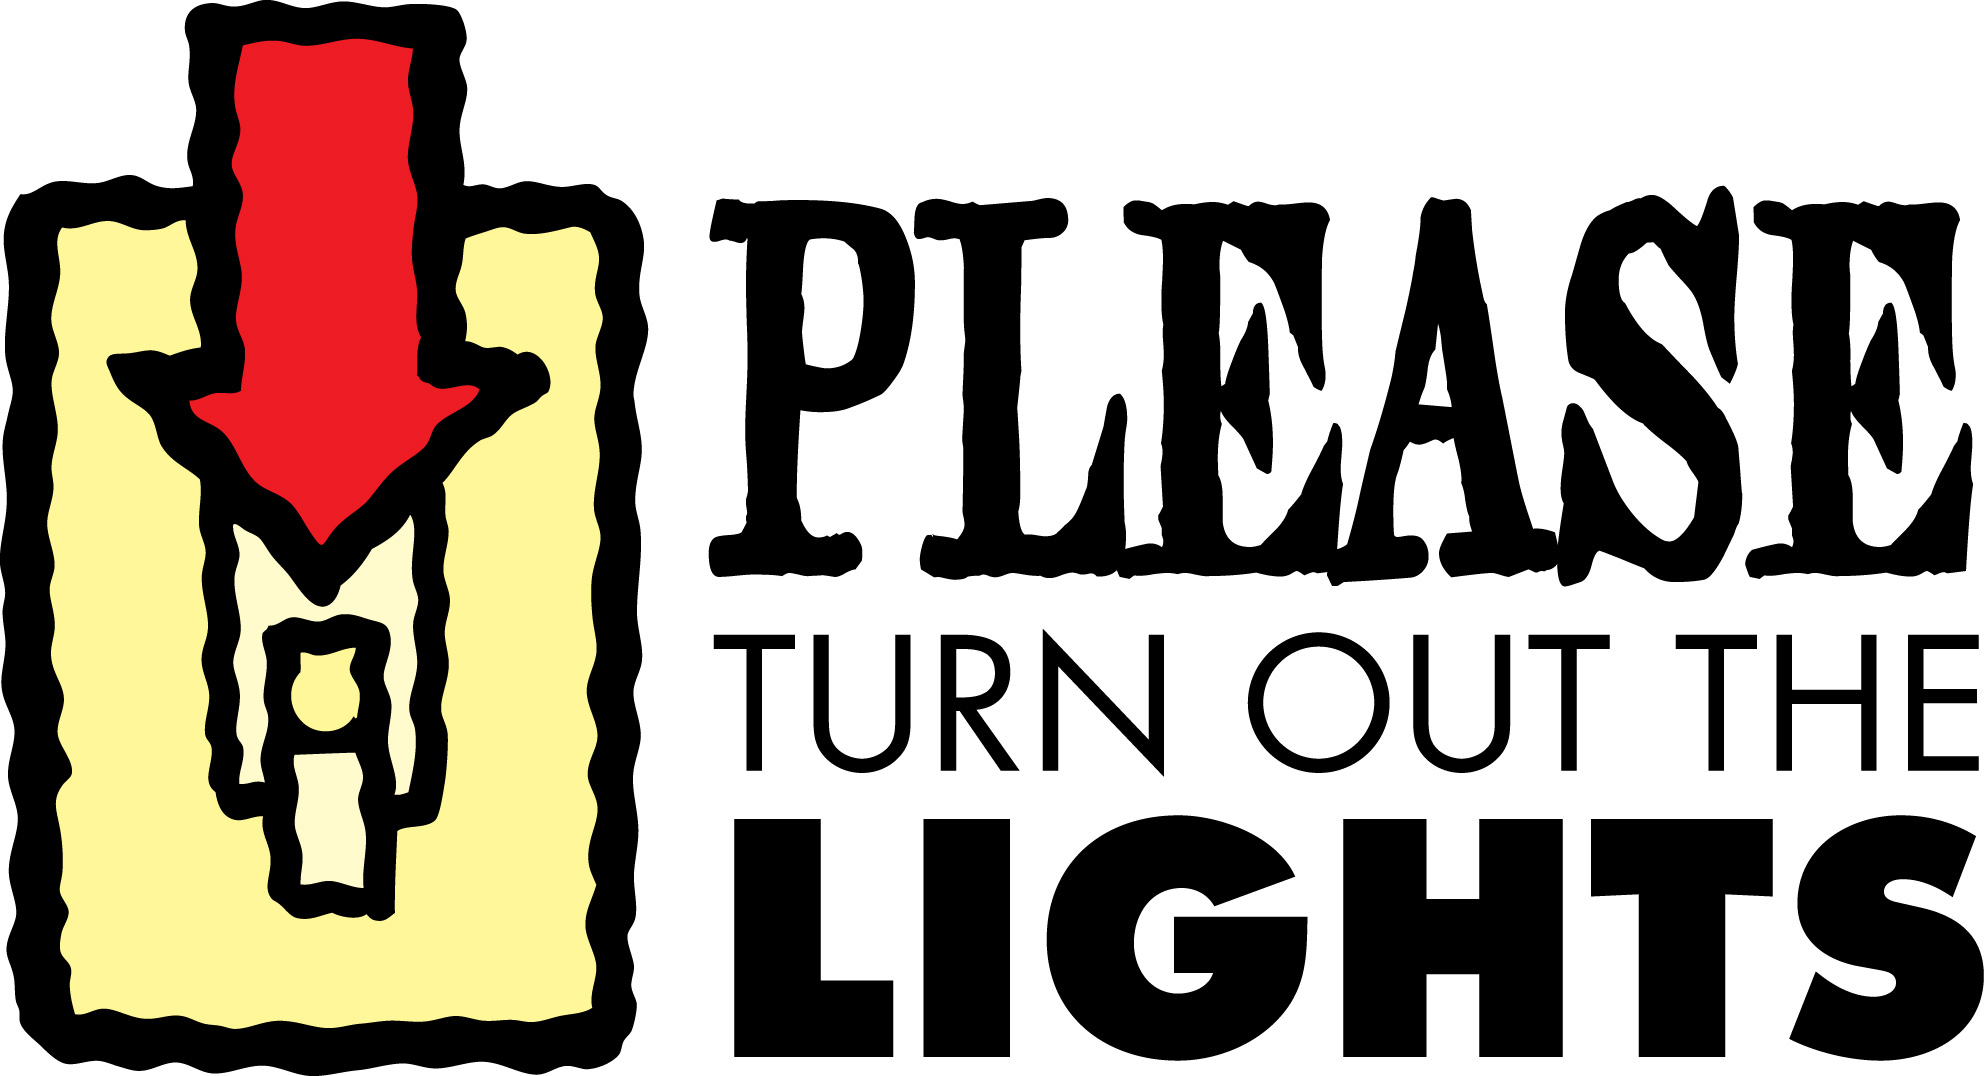 Free clipart turning off lights jpg Turn Off Lights Clipart - Clipart Kid jpg